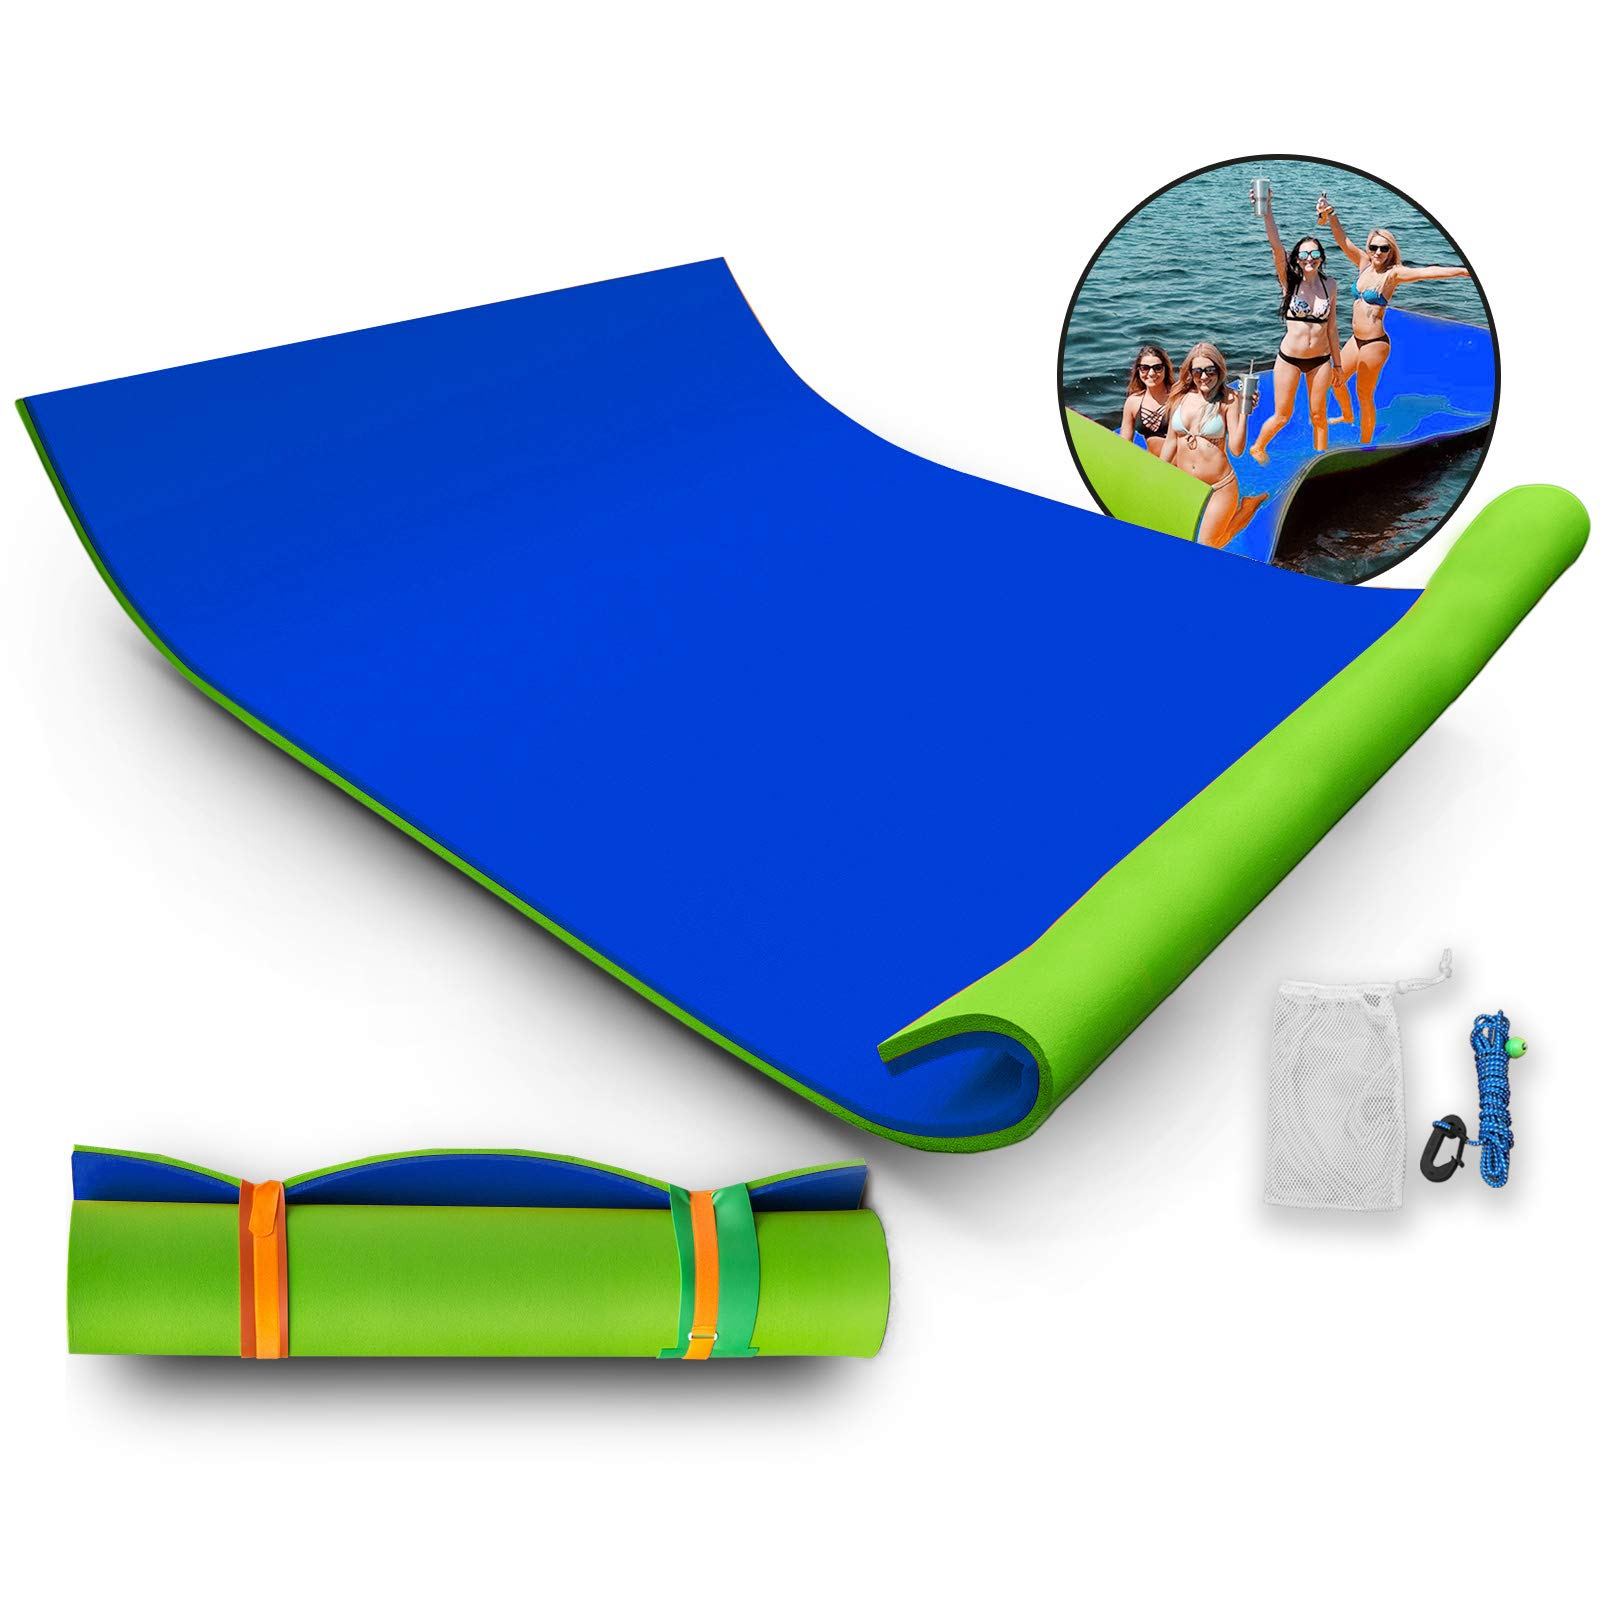 Popsport Floating Mat Floating Foam Pad Water Premium Floating Water Pad for Water Recreation and Relaxing Lily Pad for Adults and Kids (9X6ft Blue Green) by Popsport